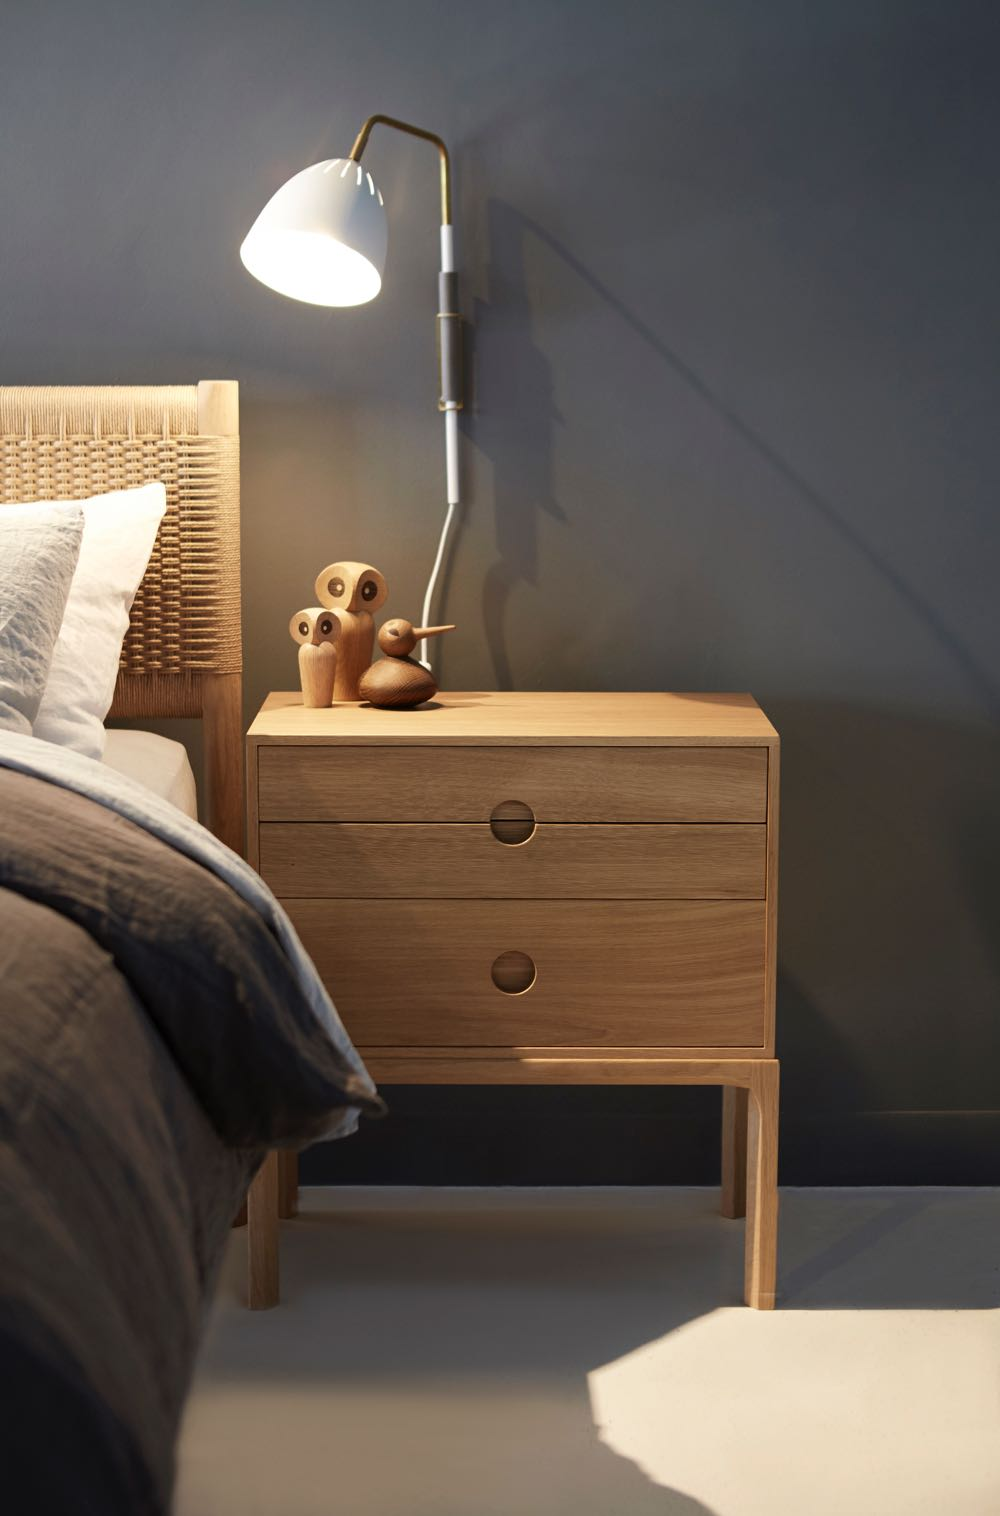 Kai Kristiansen's Entré 2B in oak with Jenny Back's 'Lean' wall light from Orsjo.